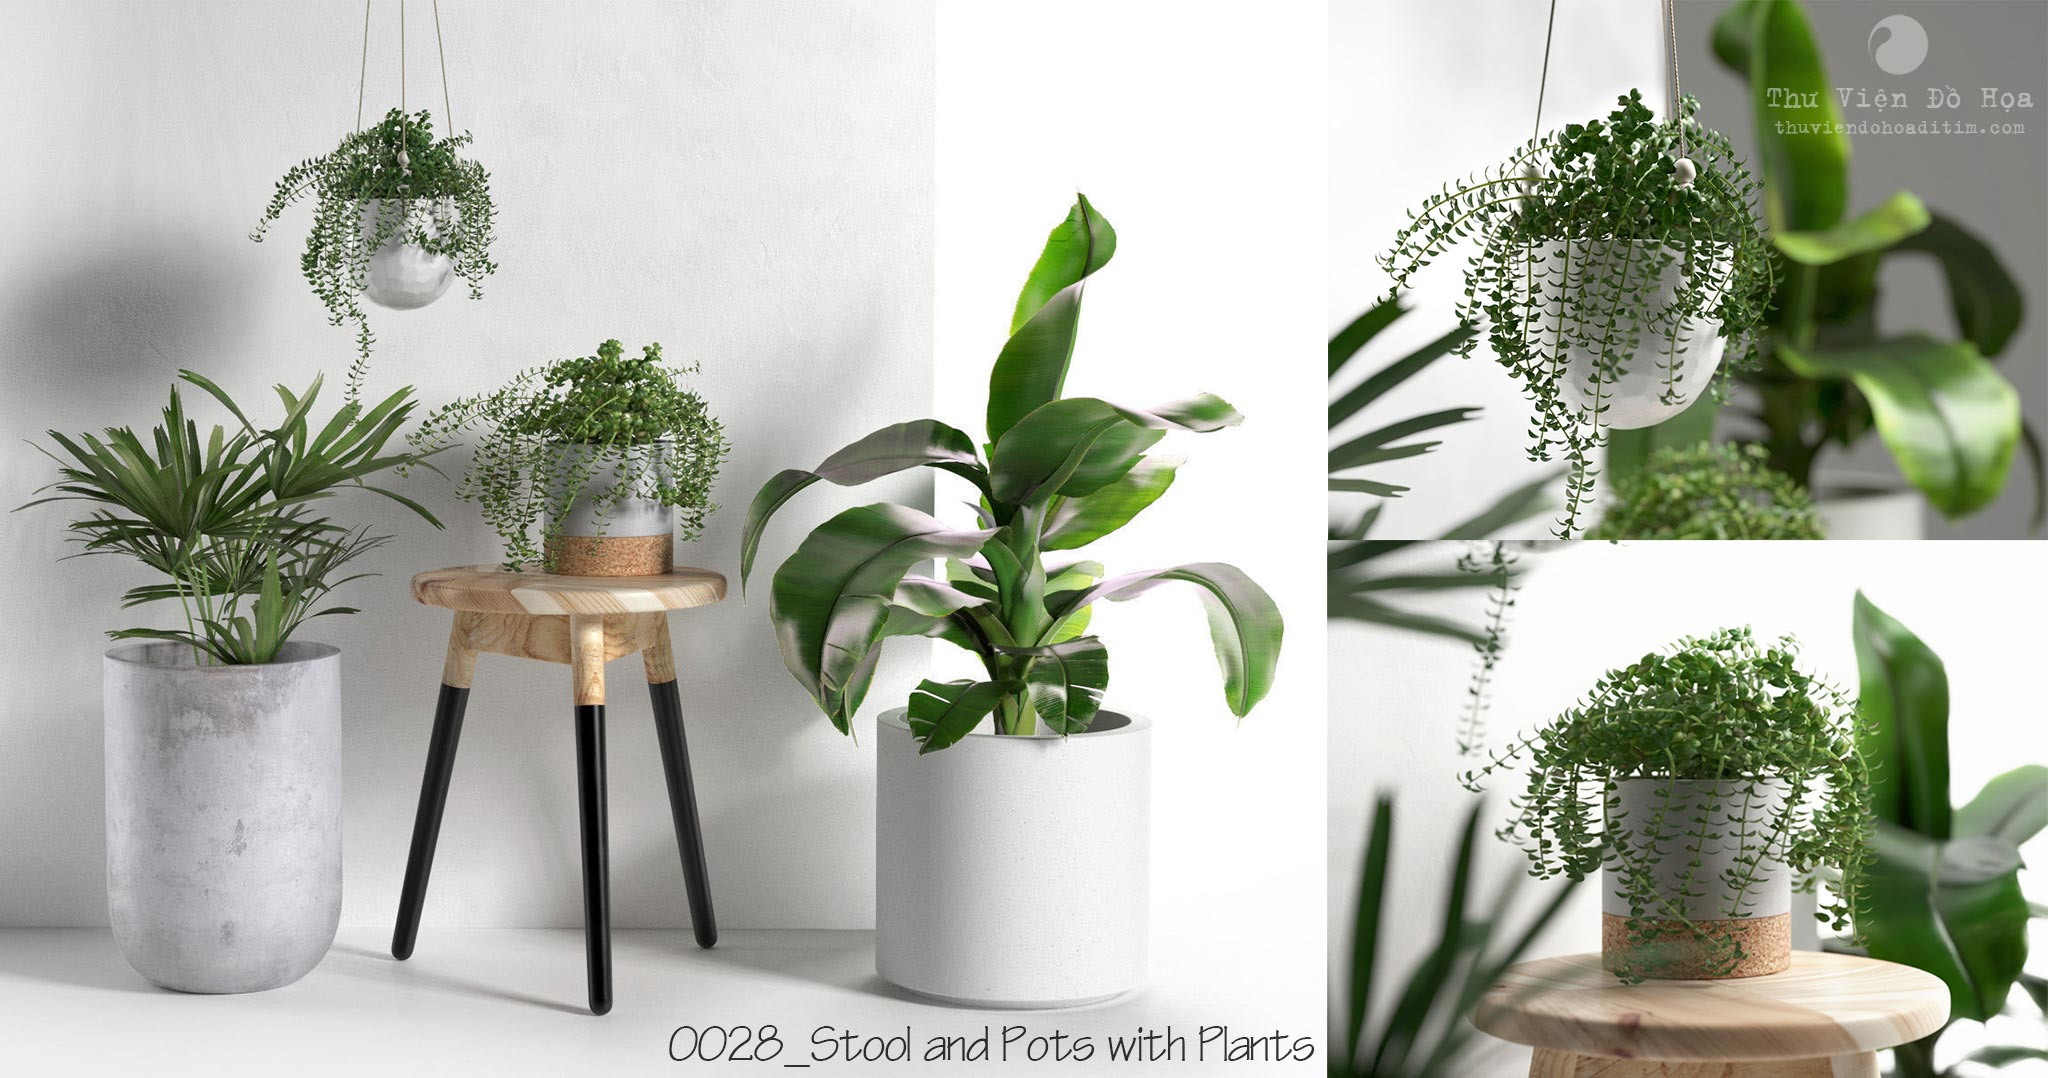 0028_Stool-and-Pots-with-Plants_Ditim.jpg